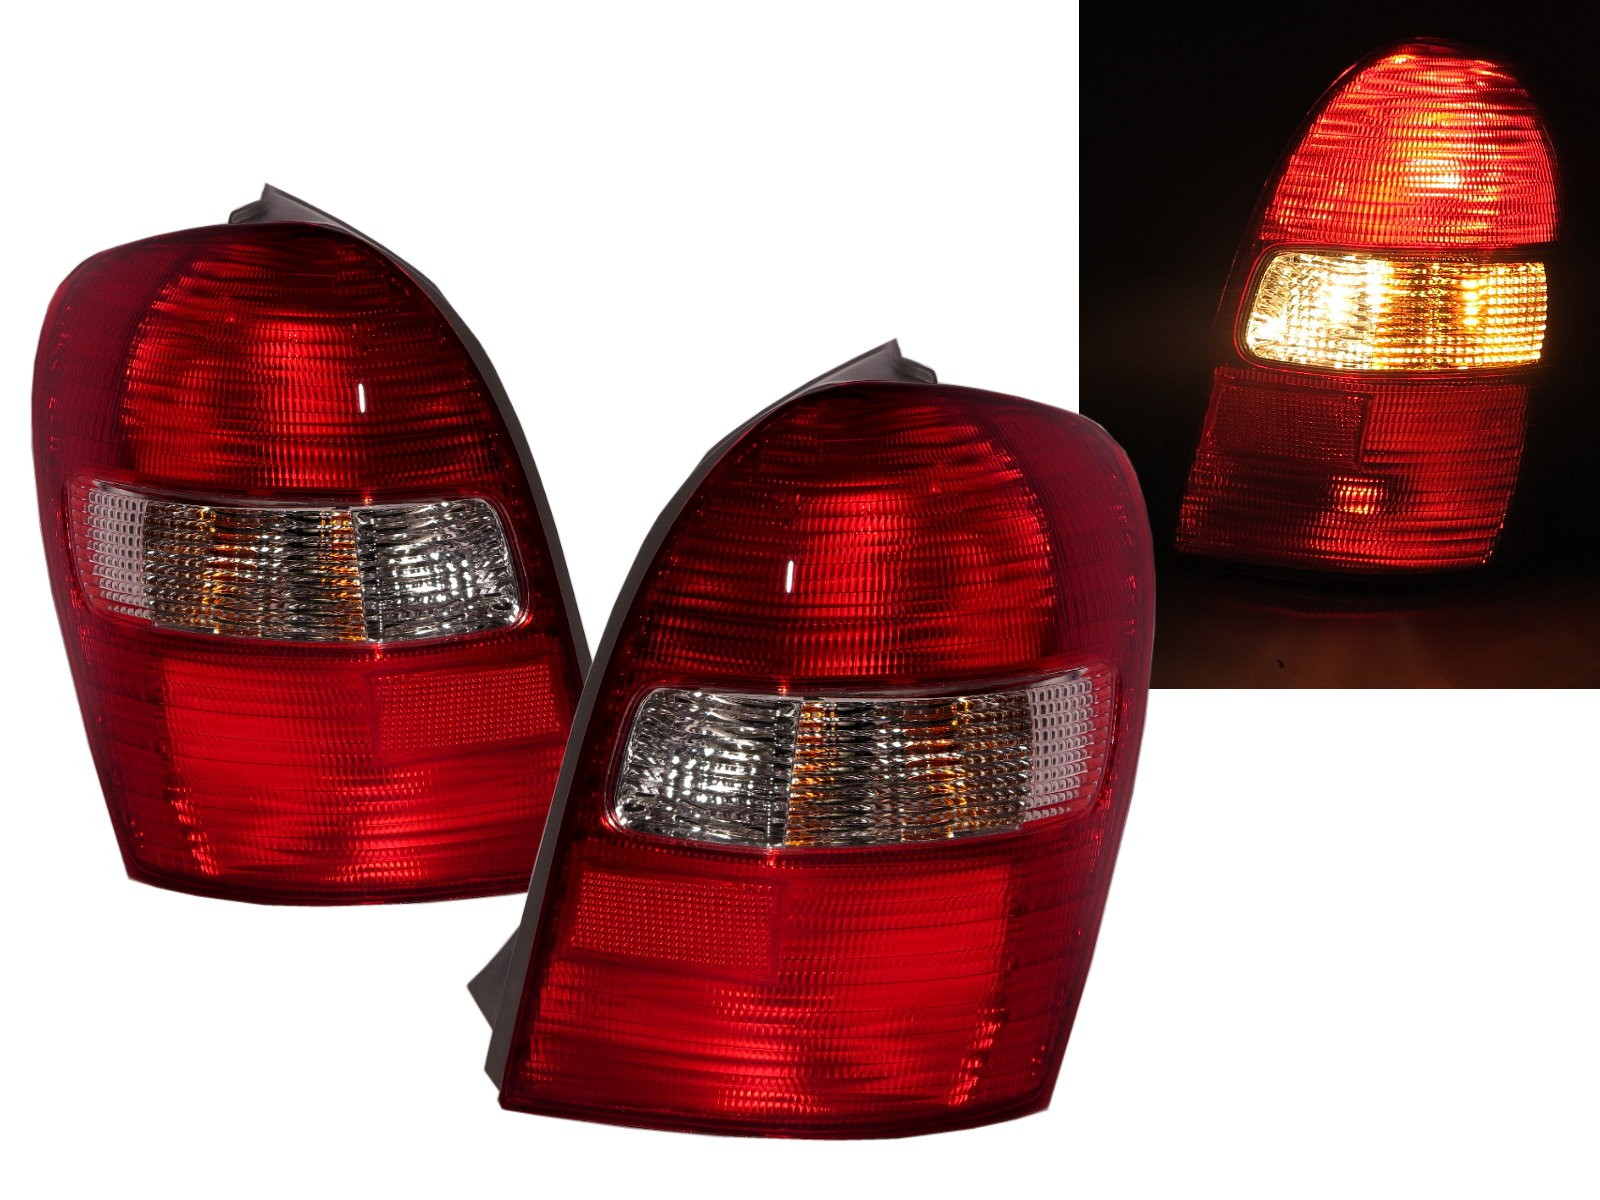 CrazyTheGod Allegro BJ Eighth generation 1998-2004 Hatchback 5D Clear Tail Rear Light Red/White for MAZDA